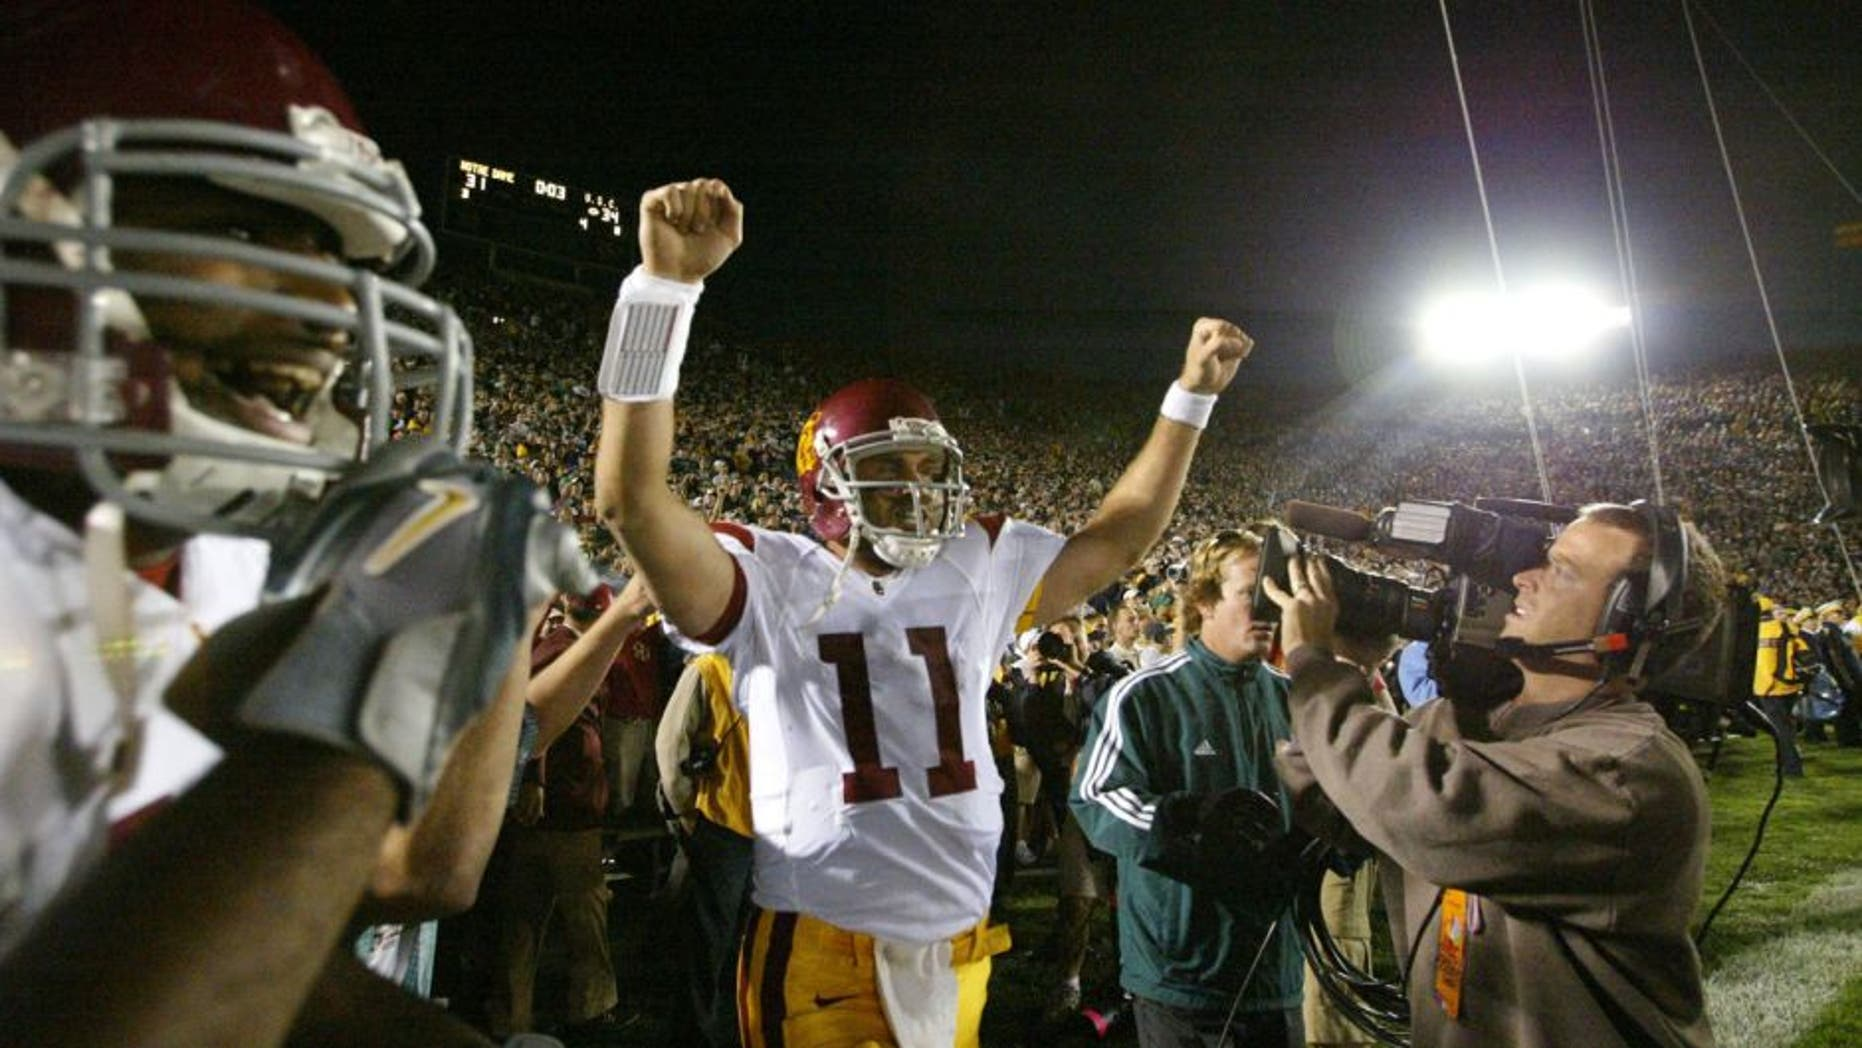 USC Southern California Matt Leinart against Notre Dame in South Bend, Ind., on Oct. 15, 2005. USC won 34-31. MANDATORY CREDIT: (Jay Drowns/Sporting News) DIGITAL PHOTOGRAPH